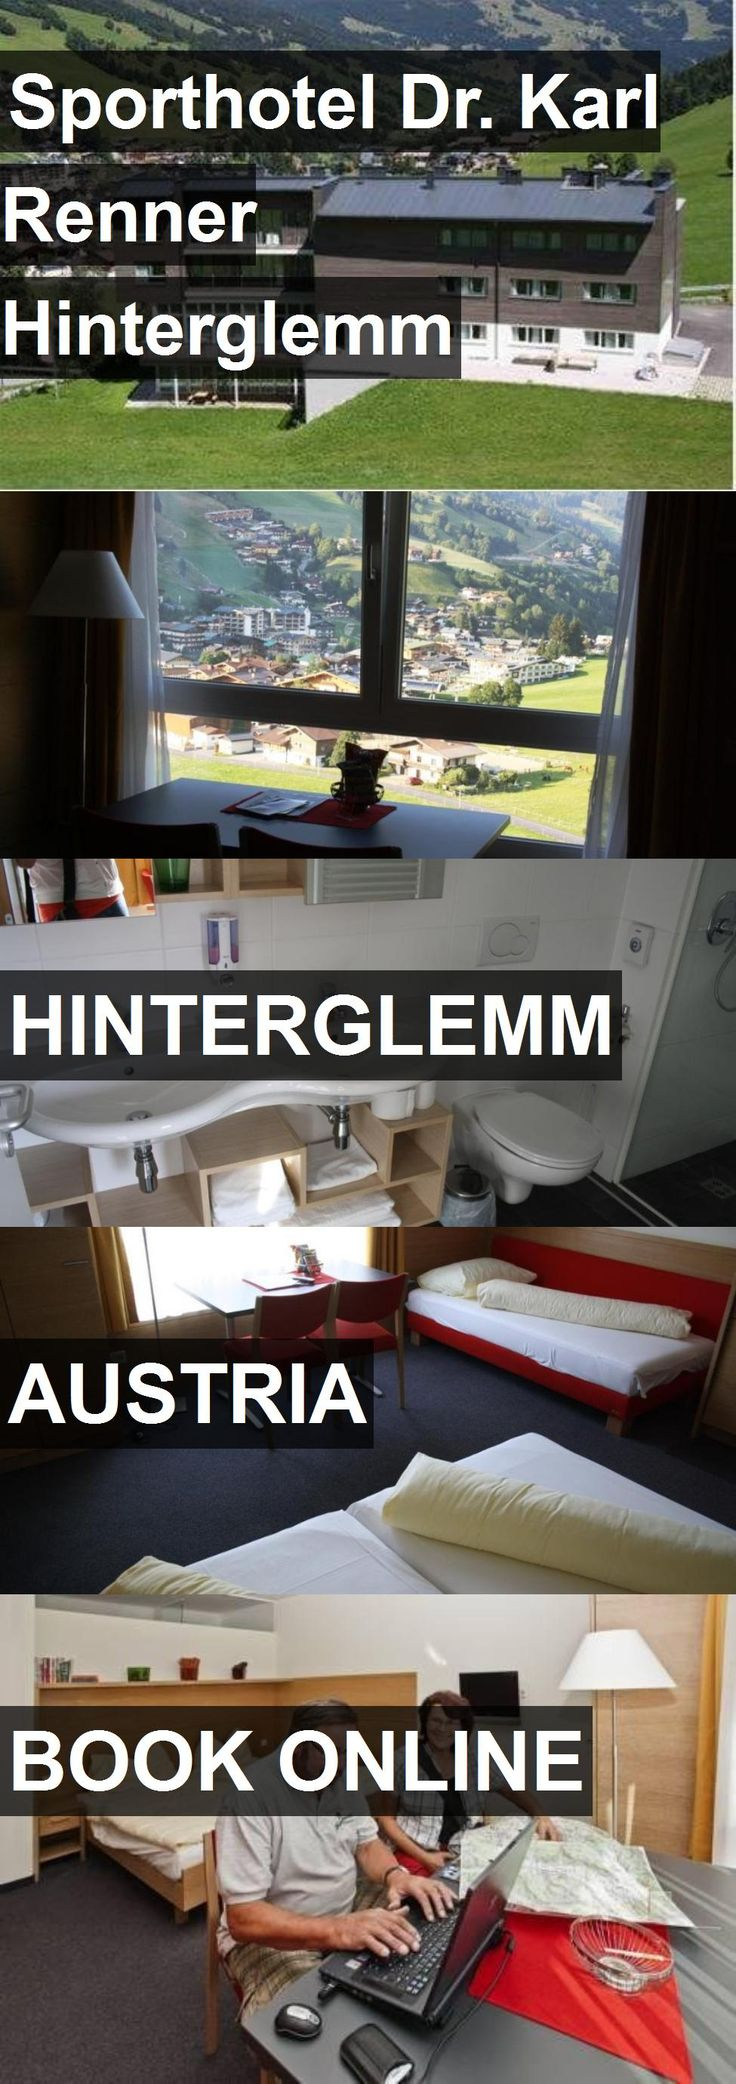 Hotel Sporthotel Dr. Karl Renner Hinterglemm in Hinterglemm, Austria. For more information, photos, reviews and best prices please follow the link. #Austria #Hinterglemm #SporthotelDr.KarlRennerHinterglemm #hotel #travel #vacation